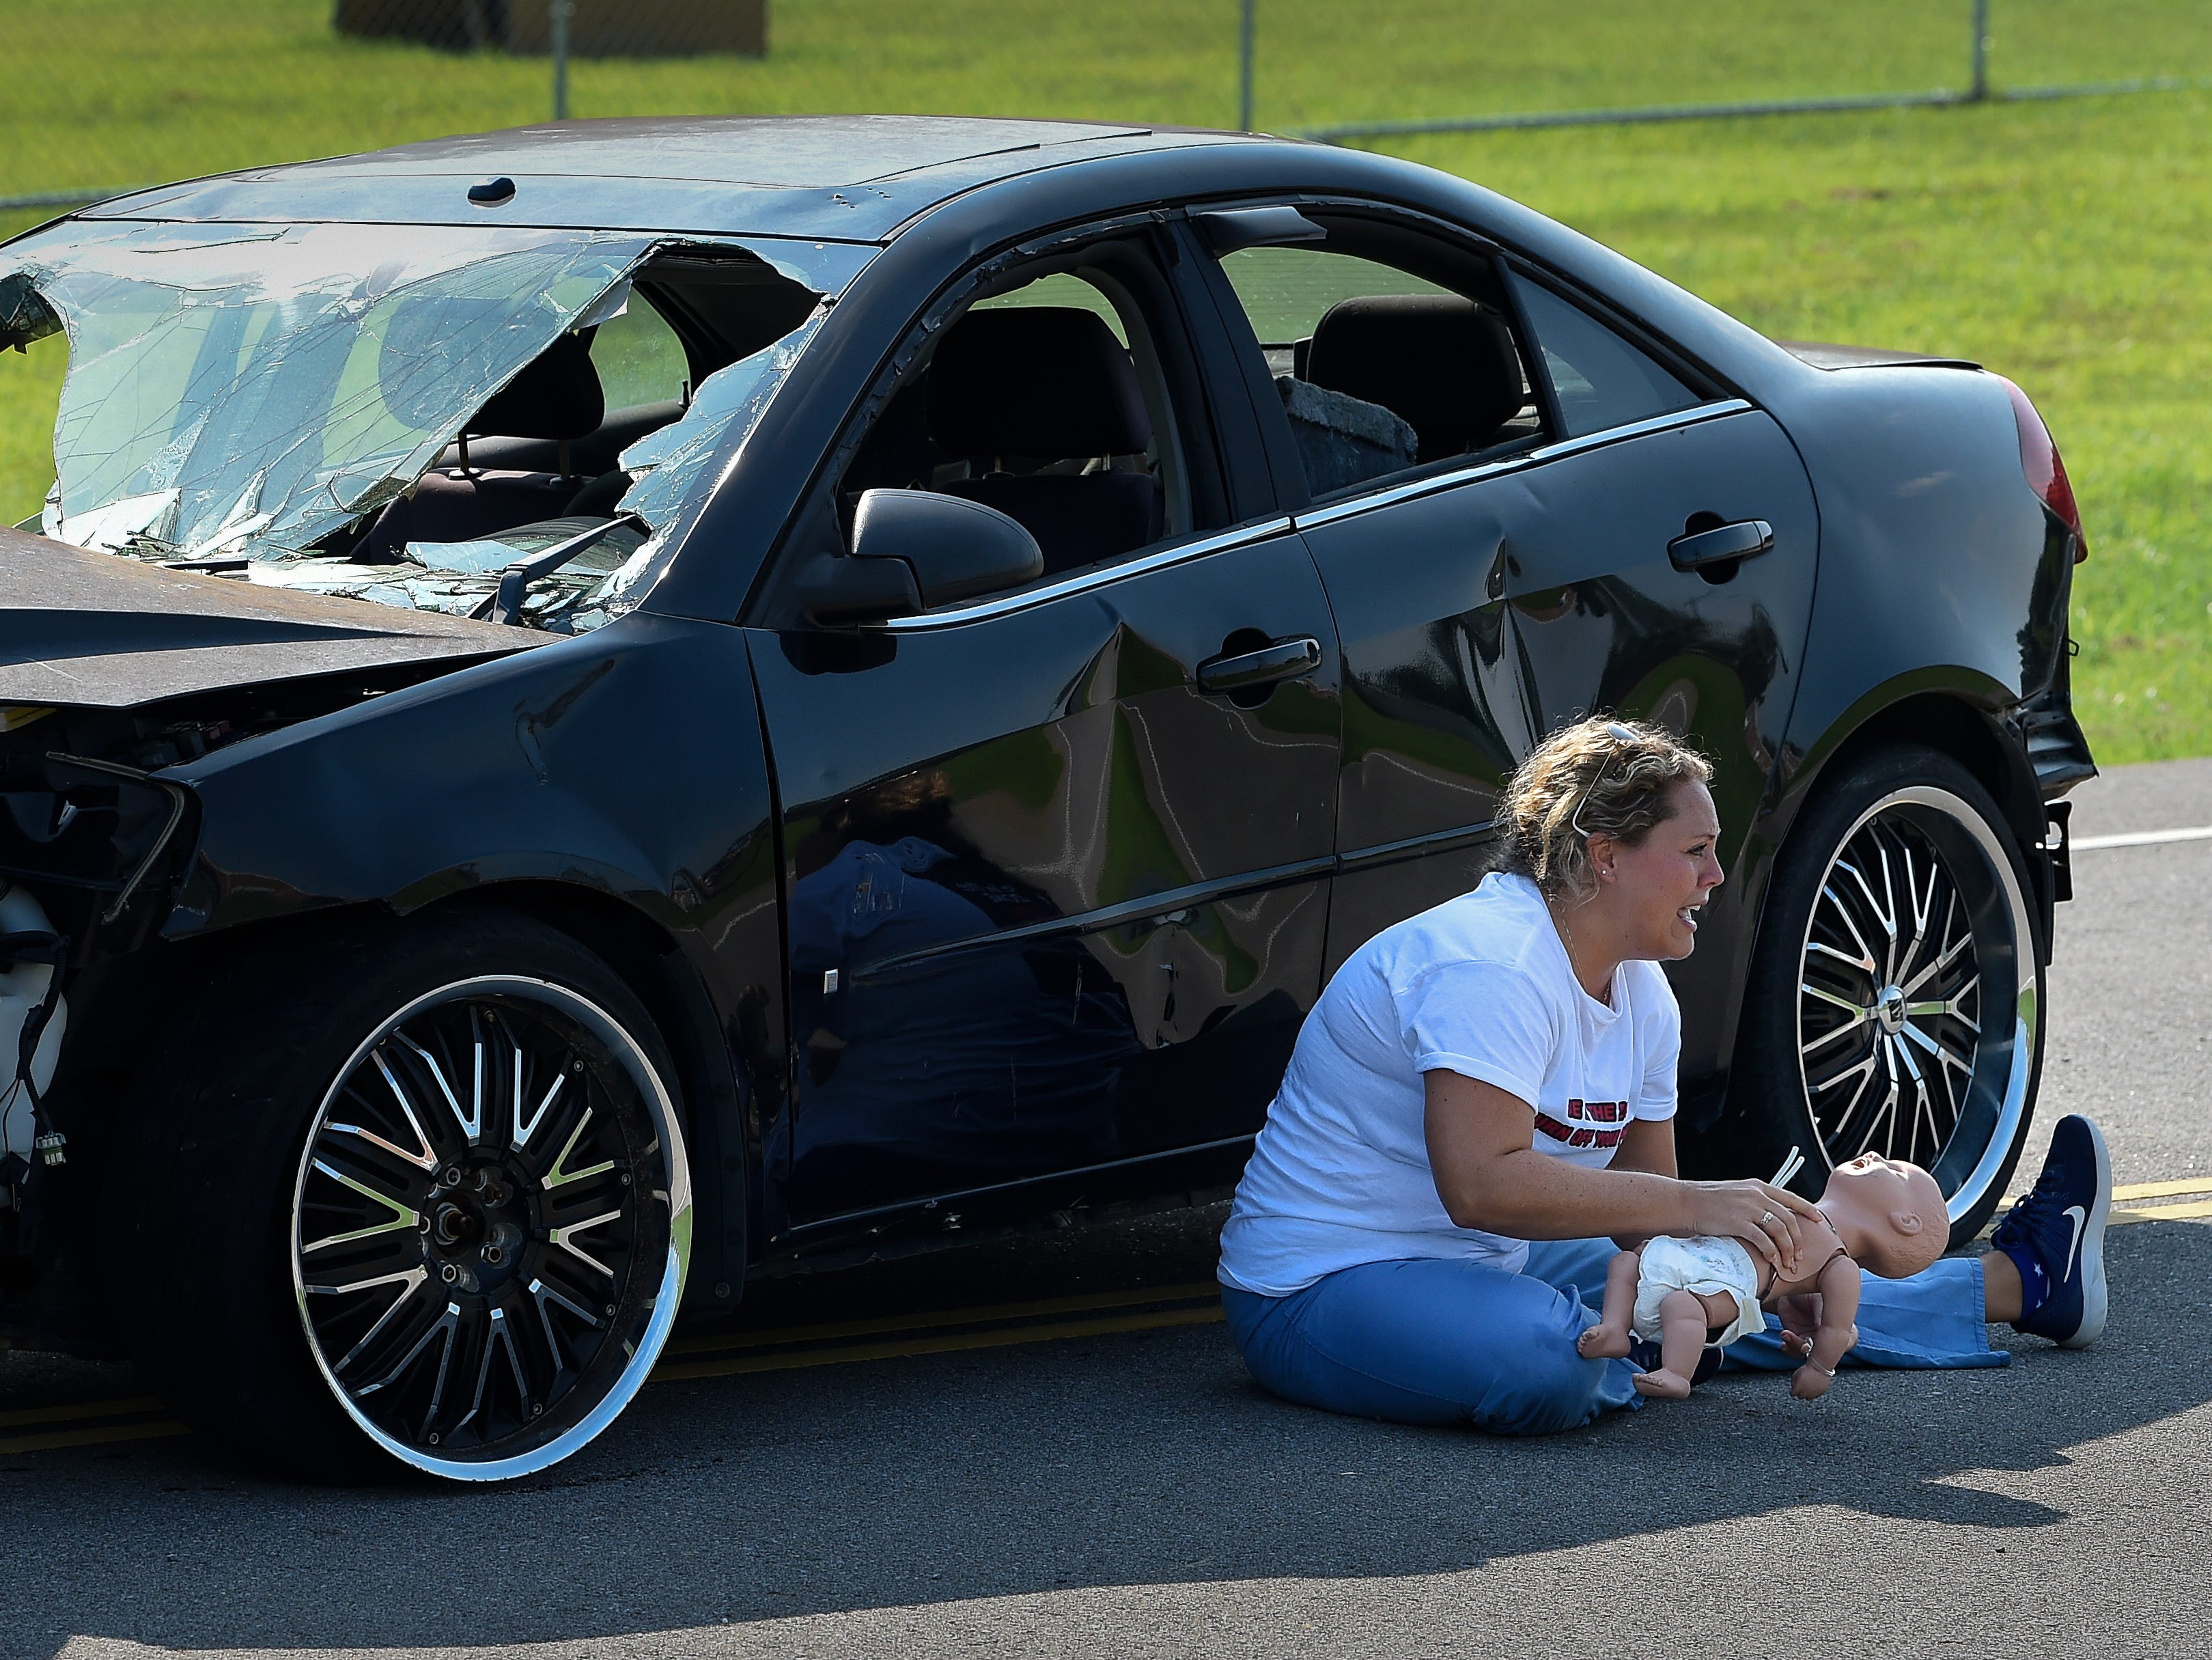 Kelsey Palladino pretends to weep as her infant is injured during a mock crash scene during a Teen Driver Education Camp held by the Tennessee Department of Safety and Homeland Security Tuesday, July 17, 2018, in Nashville, Tenn.